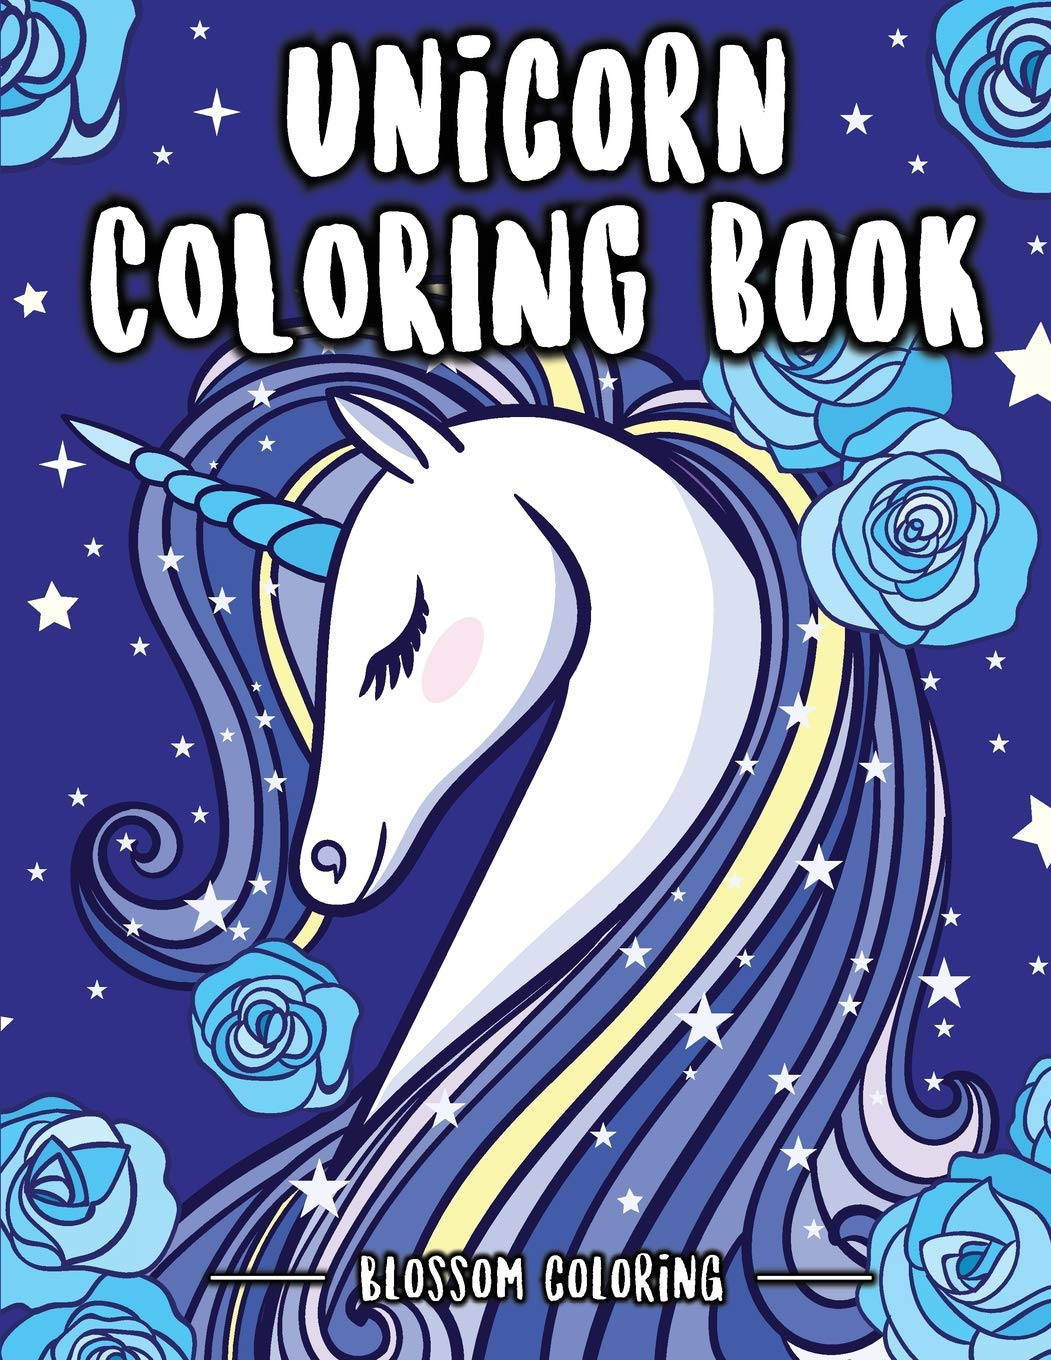 Follow the author blossom coloring